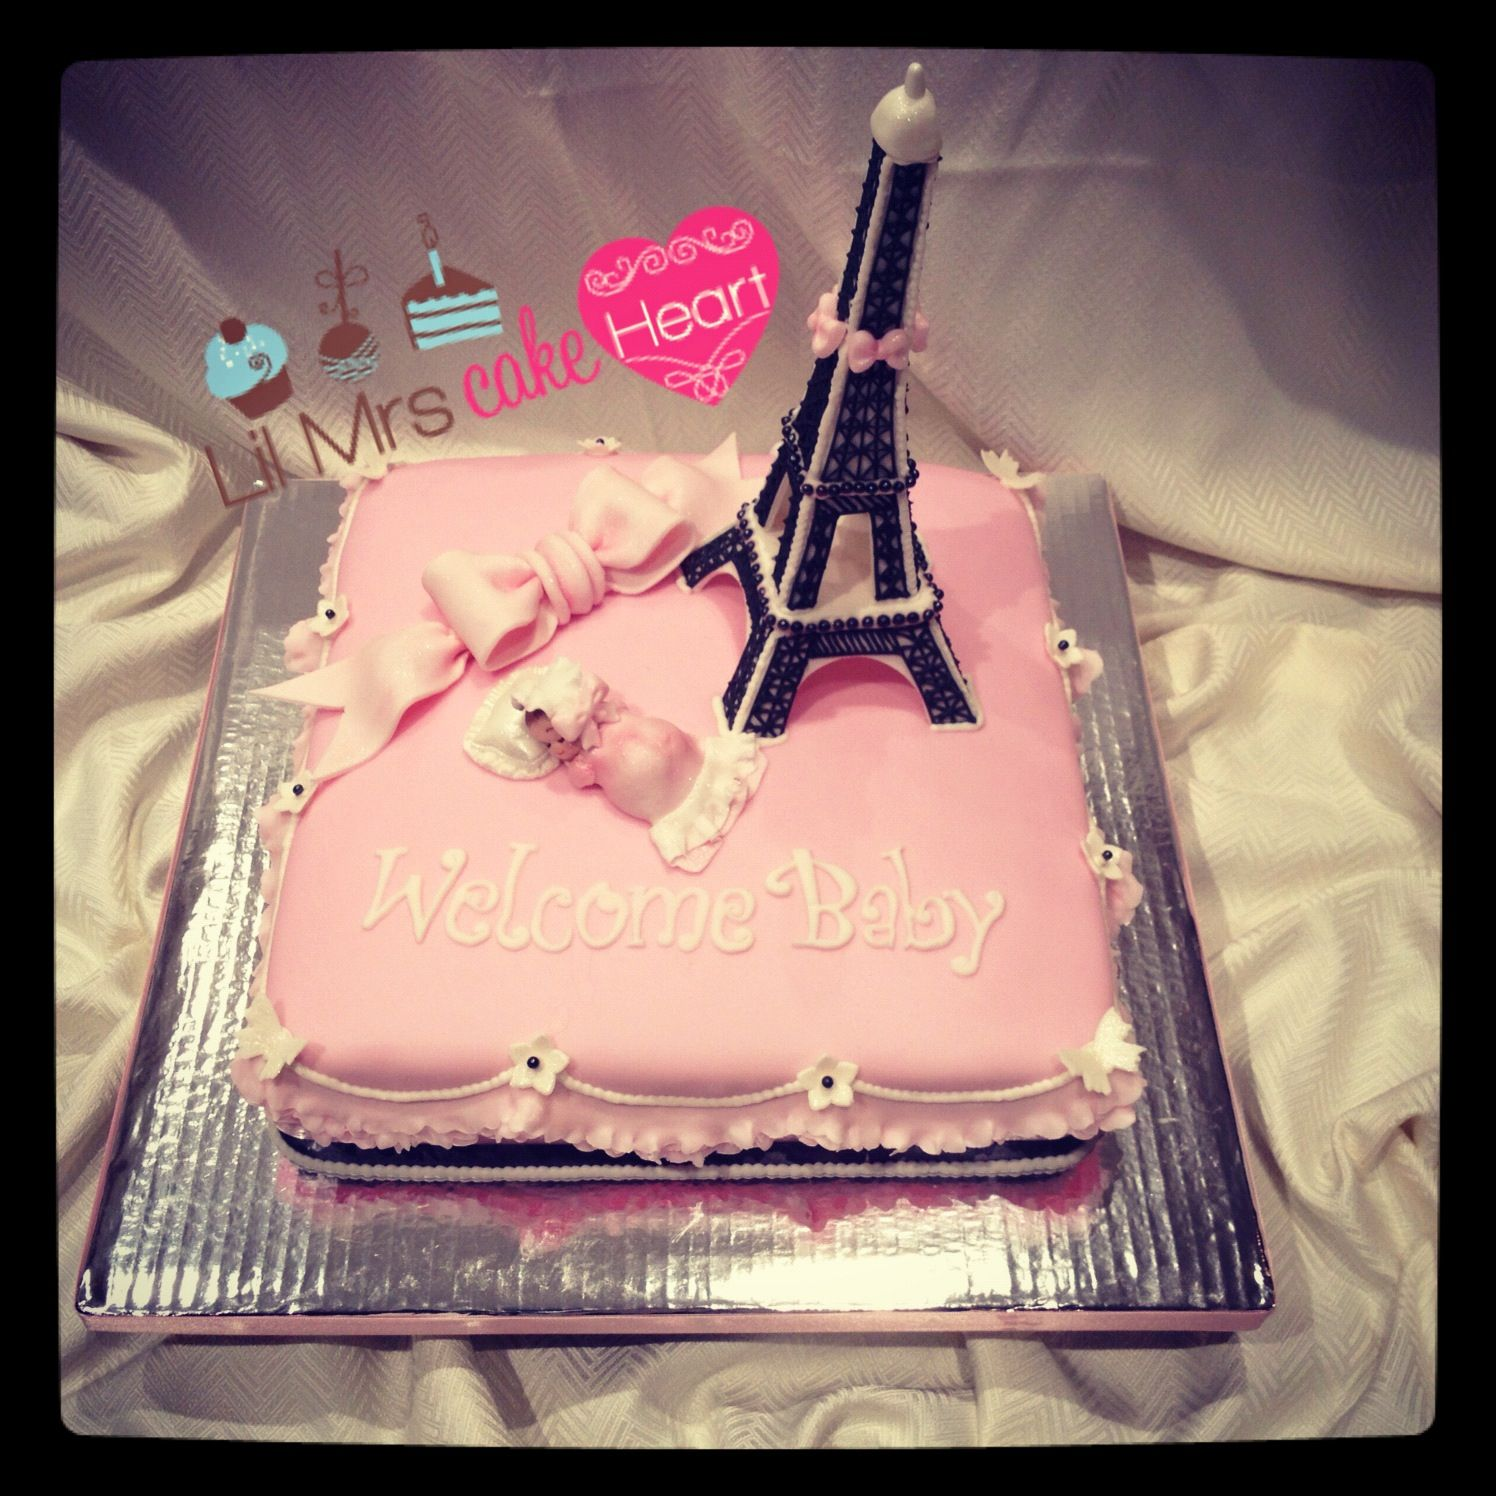 Parisian Themed Baby Shower Cake In Chocolate And Ganache Covered In